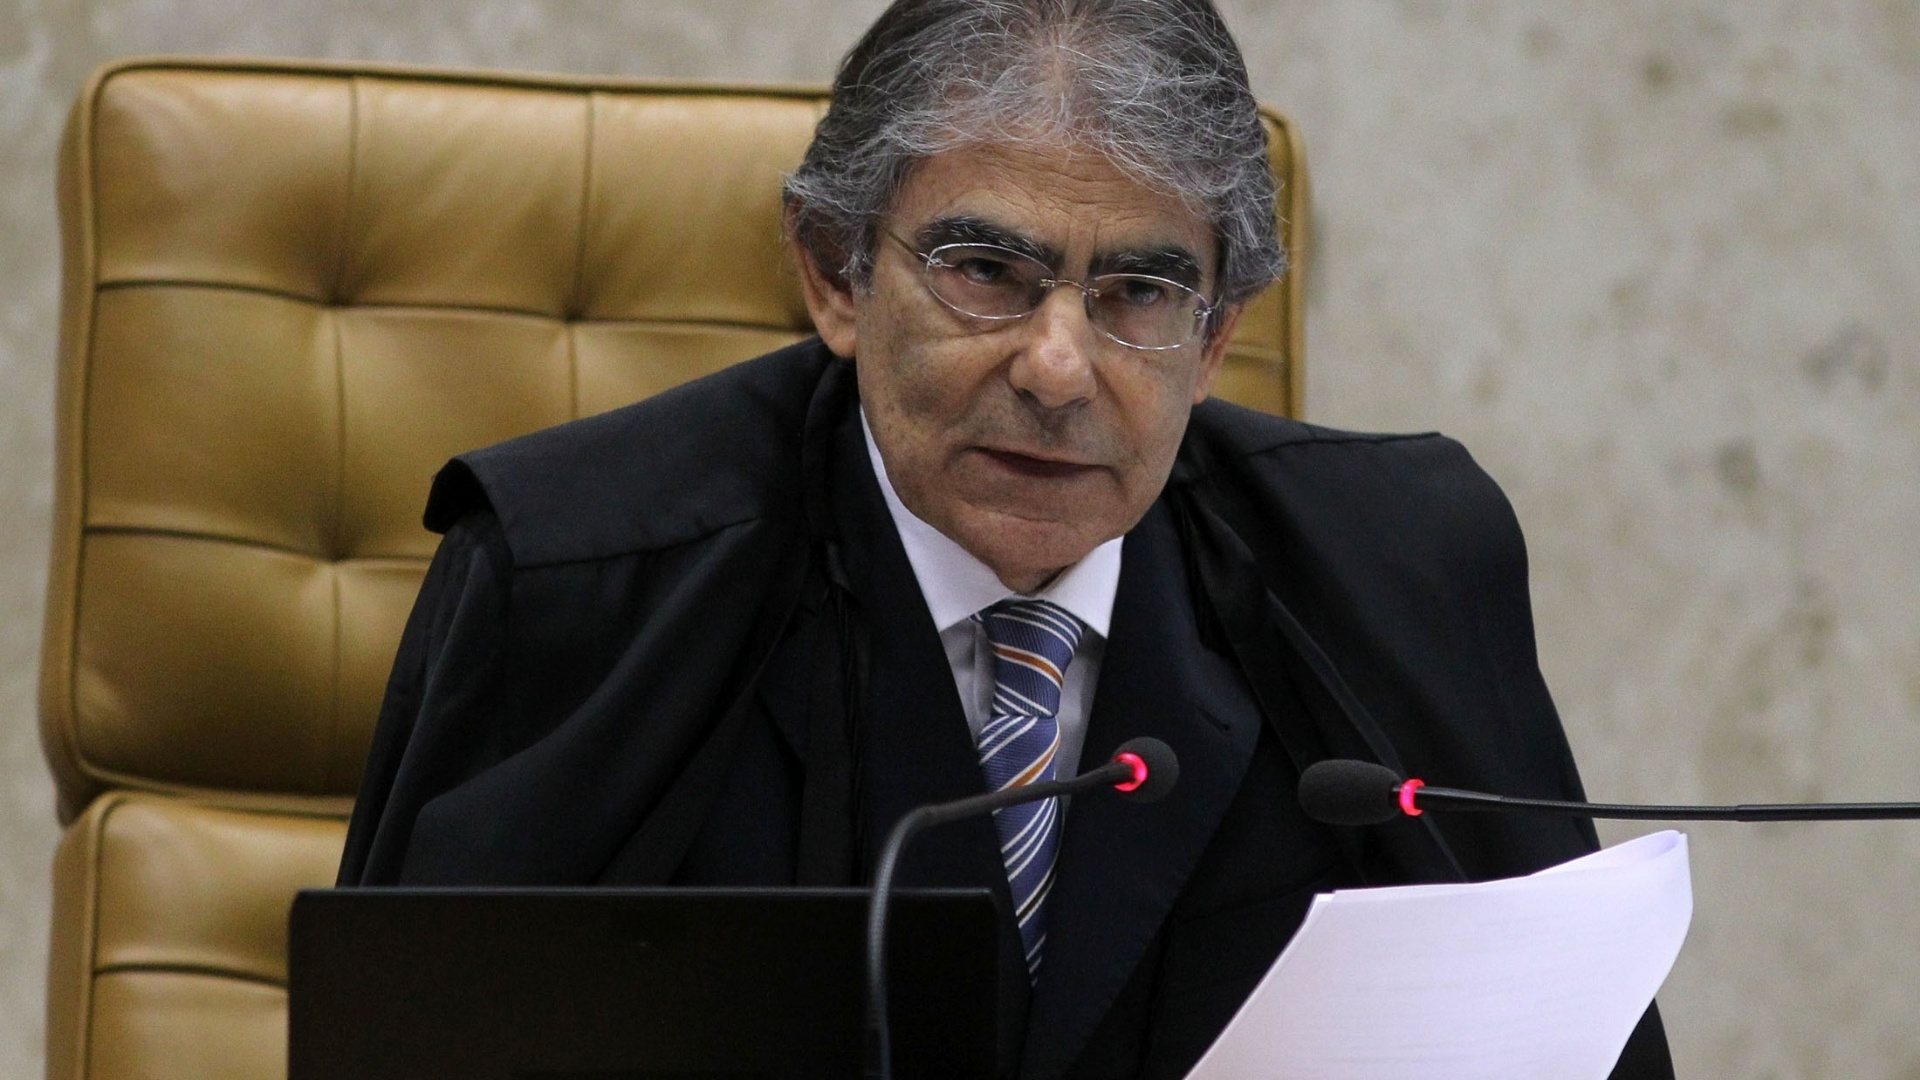 25.out.2012 - O presidente do Supremo Tribunal Federal, o ministro Ayres Britto, acompanha sesso de julgamento do mensalo no Supremo Tribunal Federal. Segundo ele, a pena sugerida por Barbosa para Ramon Hollerbach  de dois anos e oito meses de recluso, e a proposta por Lewandowski  de um ano e quatro meses de priso